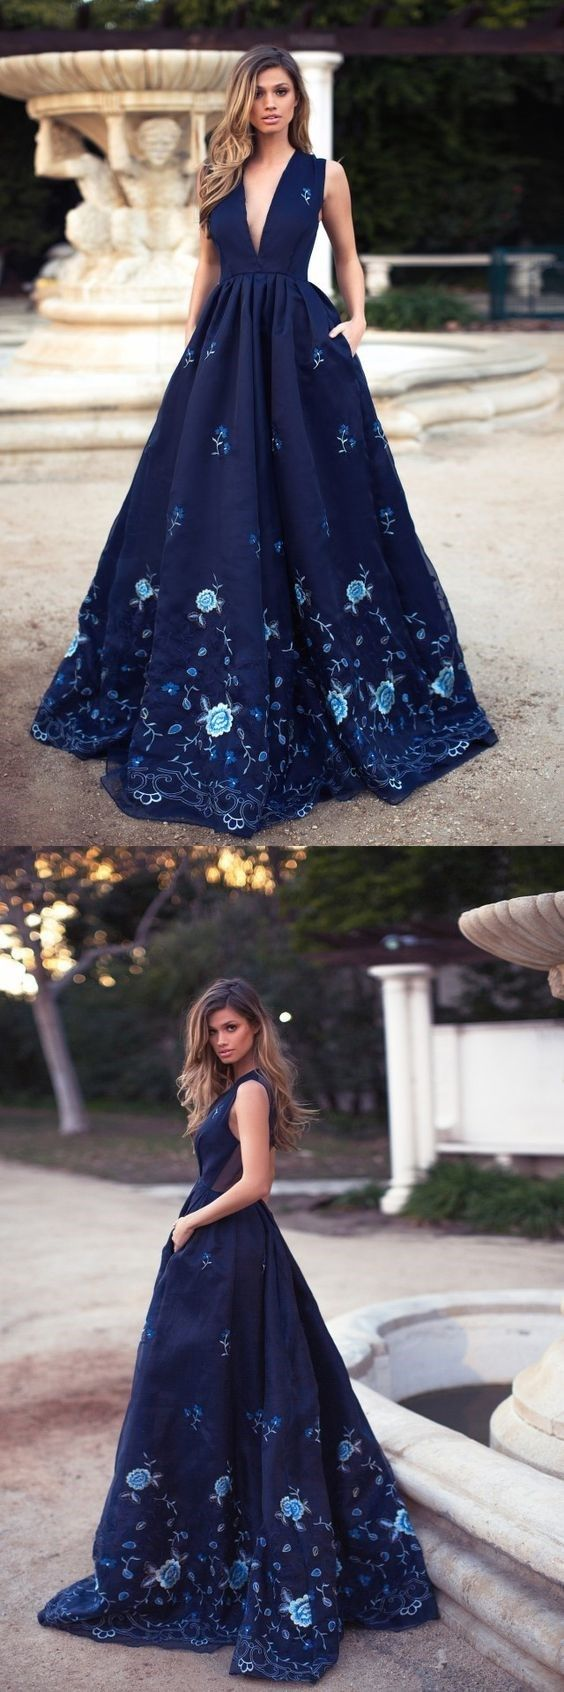 A-Line Deep V-Neck Navy Blue Evening Prom Dress wi… -  Prom shopping is alive and well on Pinterest. Compare prices for this @ Wrhel.com before you commit to buy. #Prom